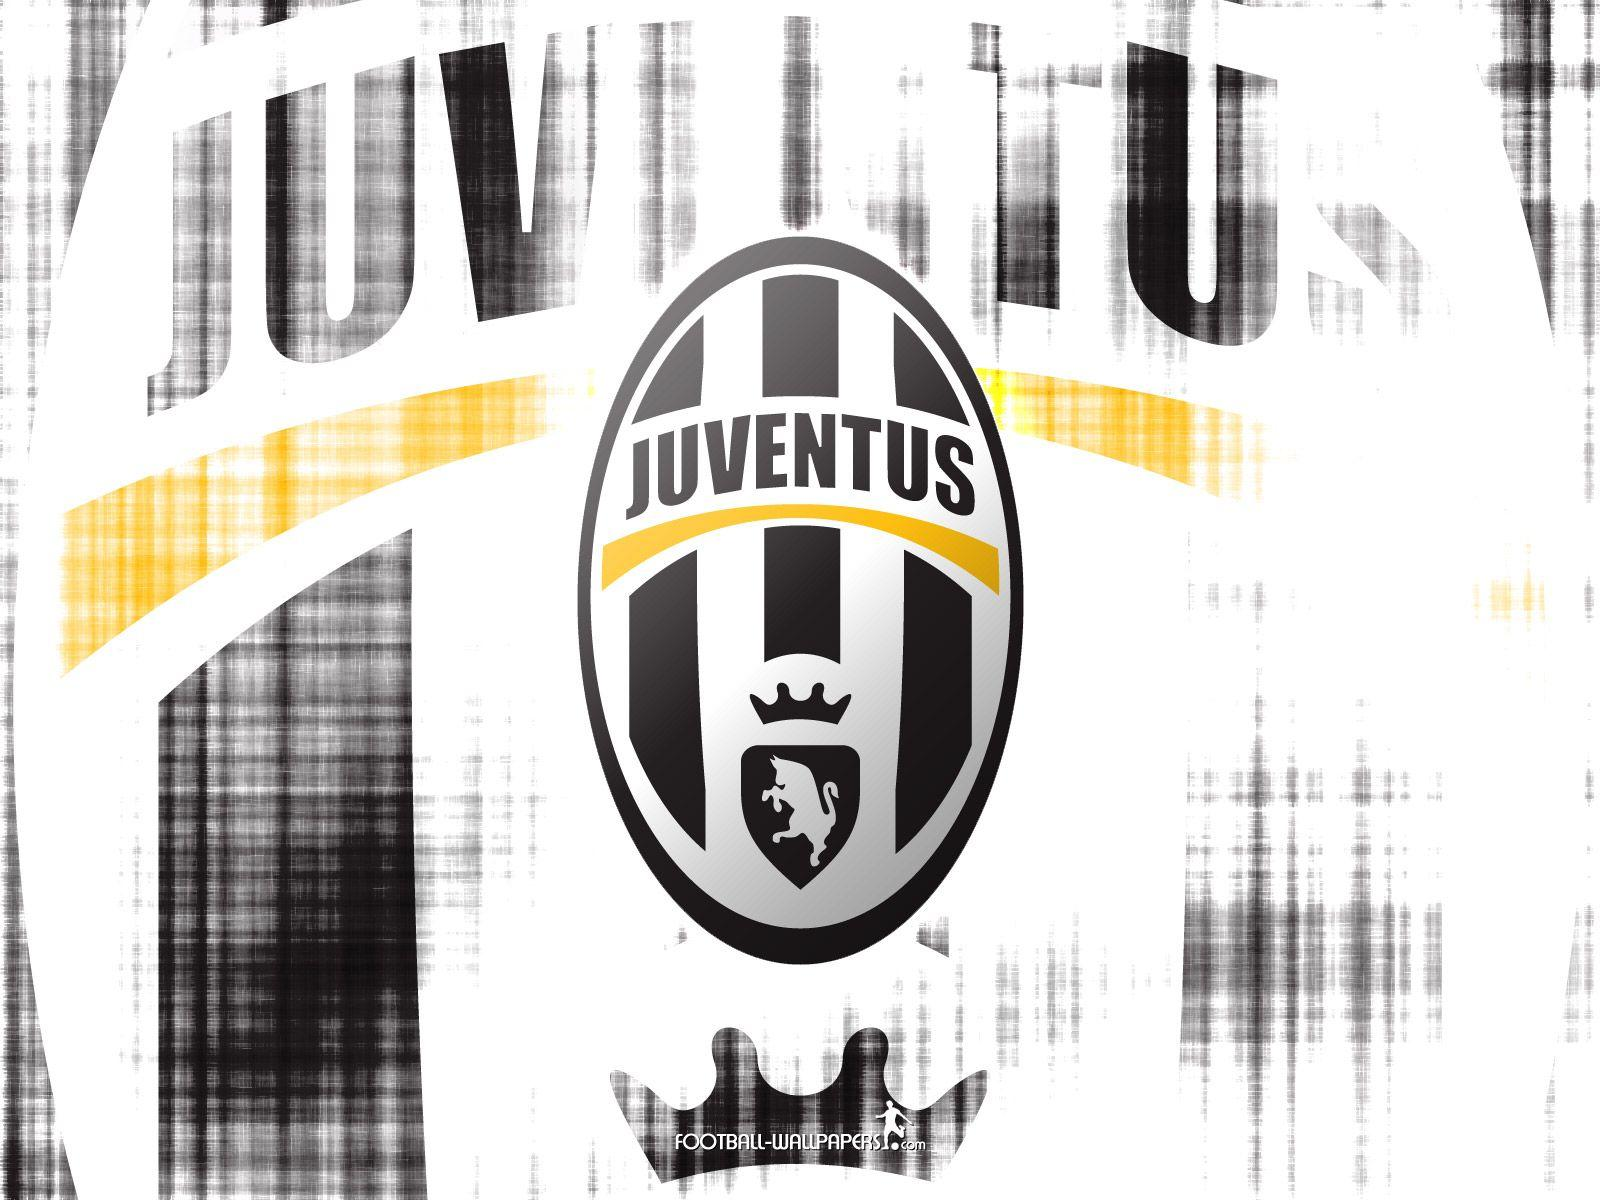 Juventus Wallpaper #1 | Football Wallpapers and Videos